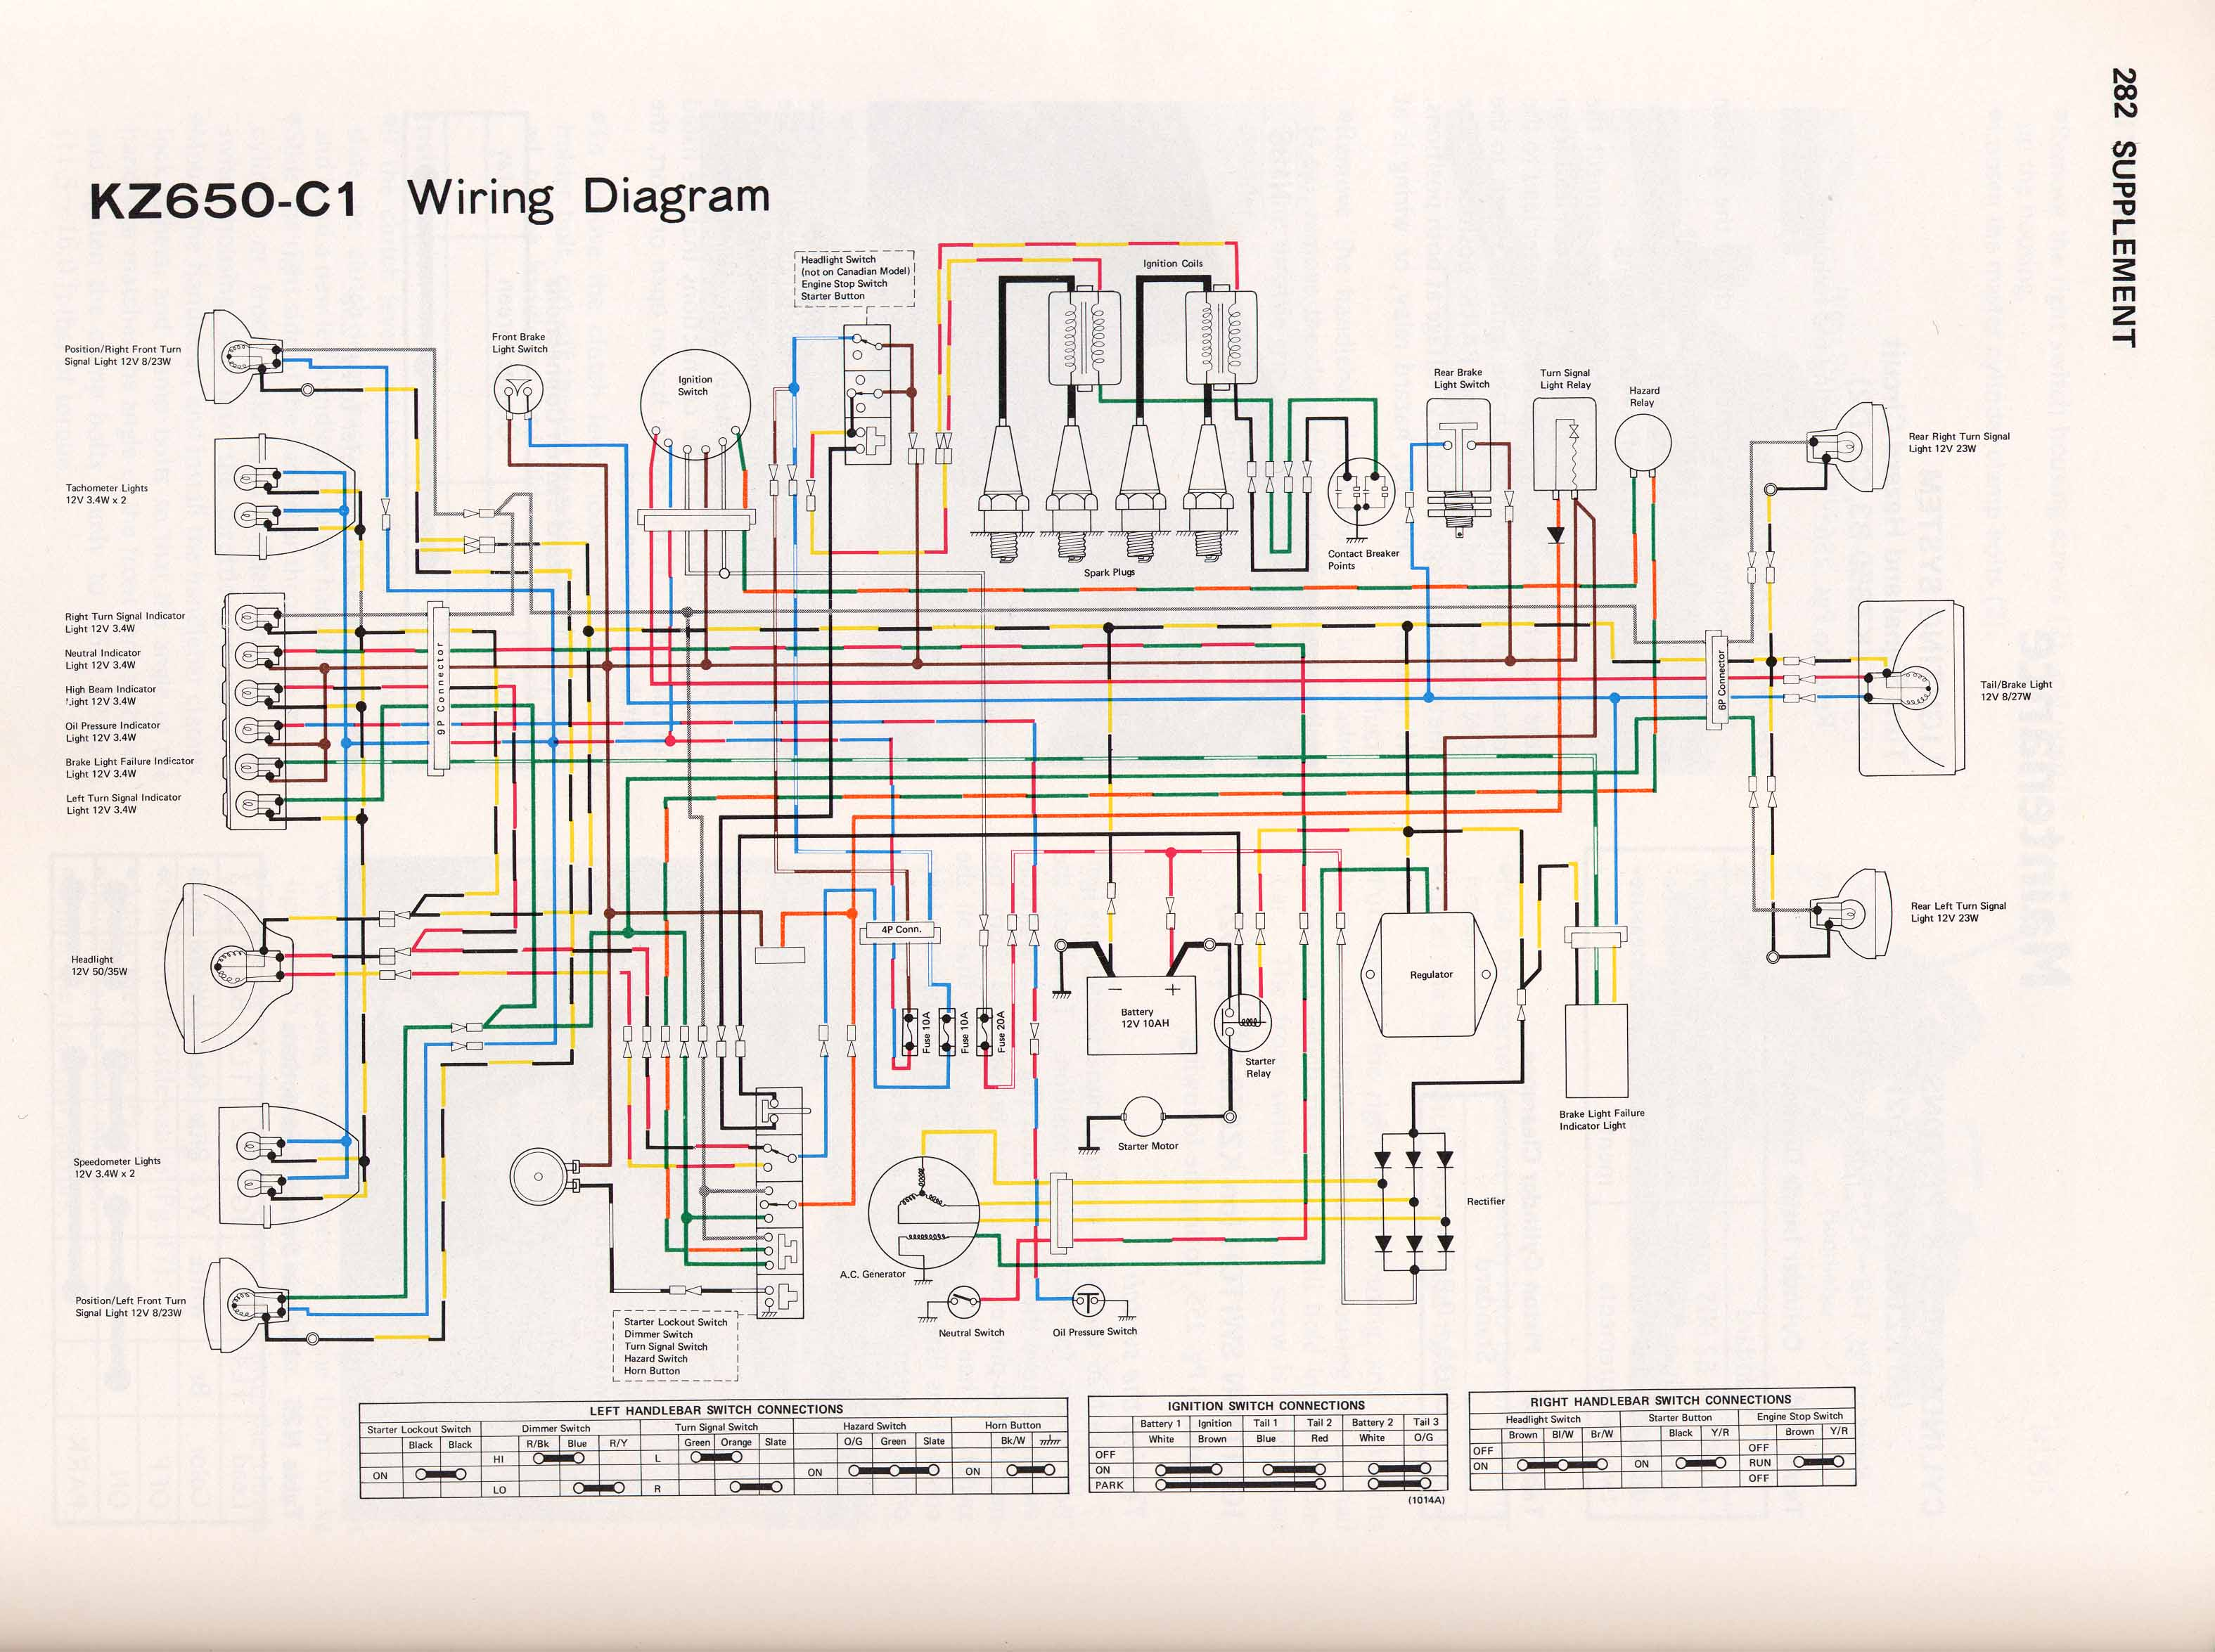 KZ650 C1 kawasaki kz650 wiring diagram vulcan 1500 wiring diagram \u2022 free 1978 gs750 wiring diagram at nearapp.co